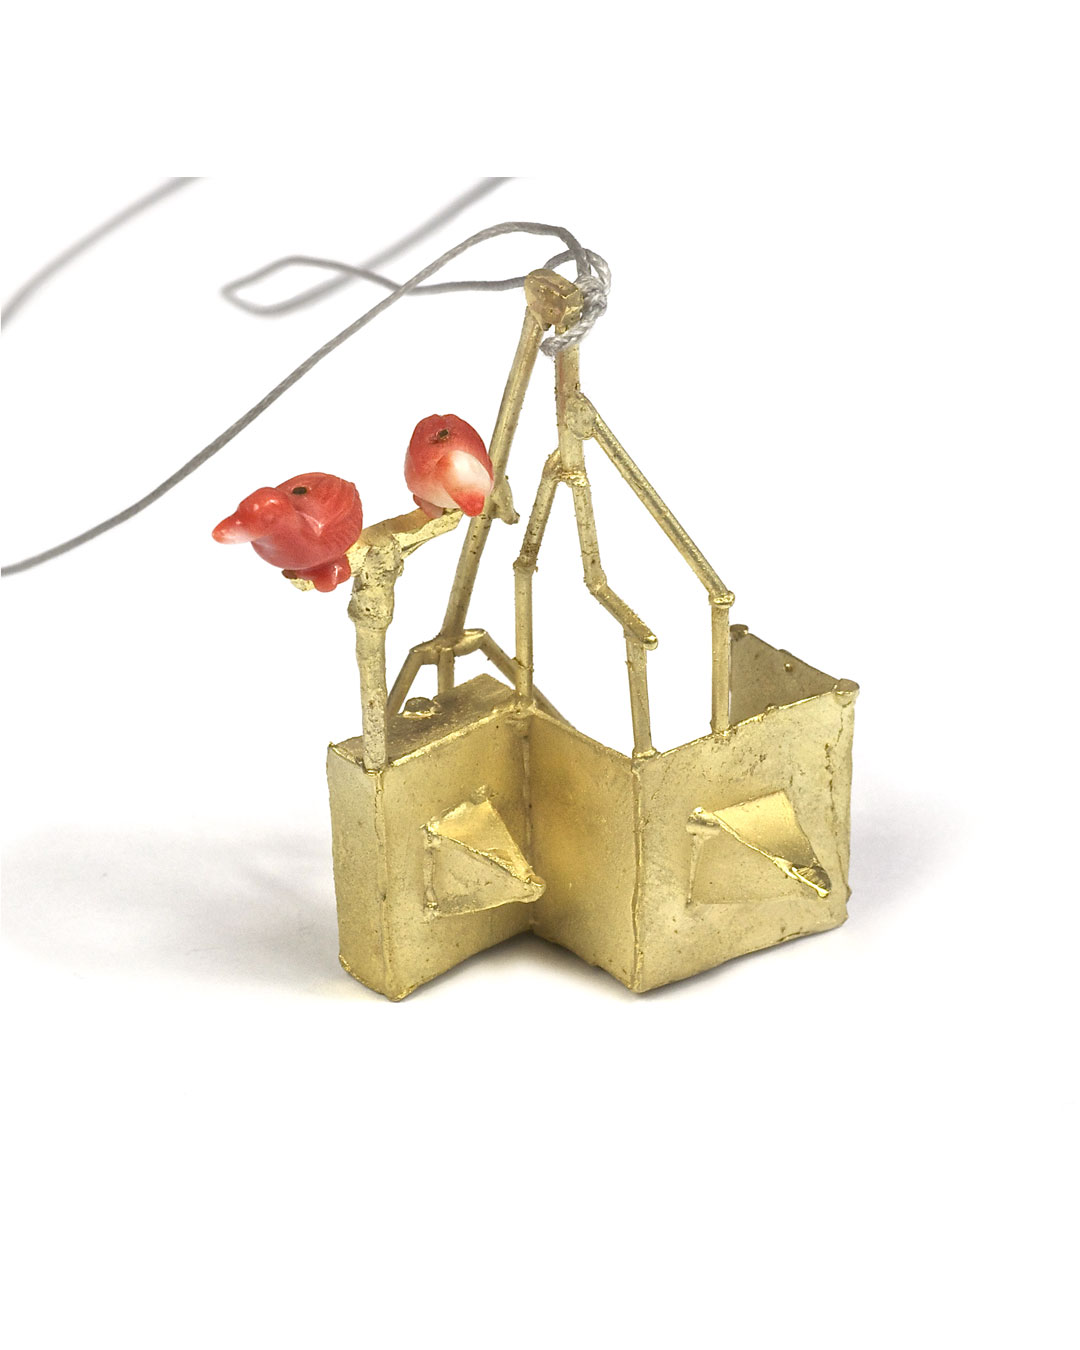 Andrea Wippermann, Enten über der Stadt (Ducks above Town), 2005, pendant; 14ct gold, coral, 48 x 45 x 32 mm, €2700